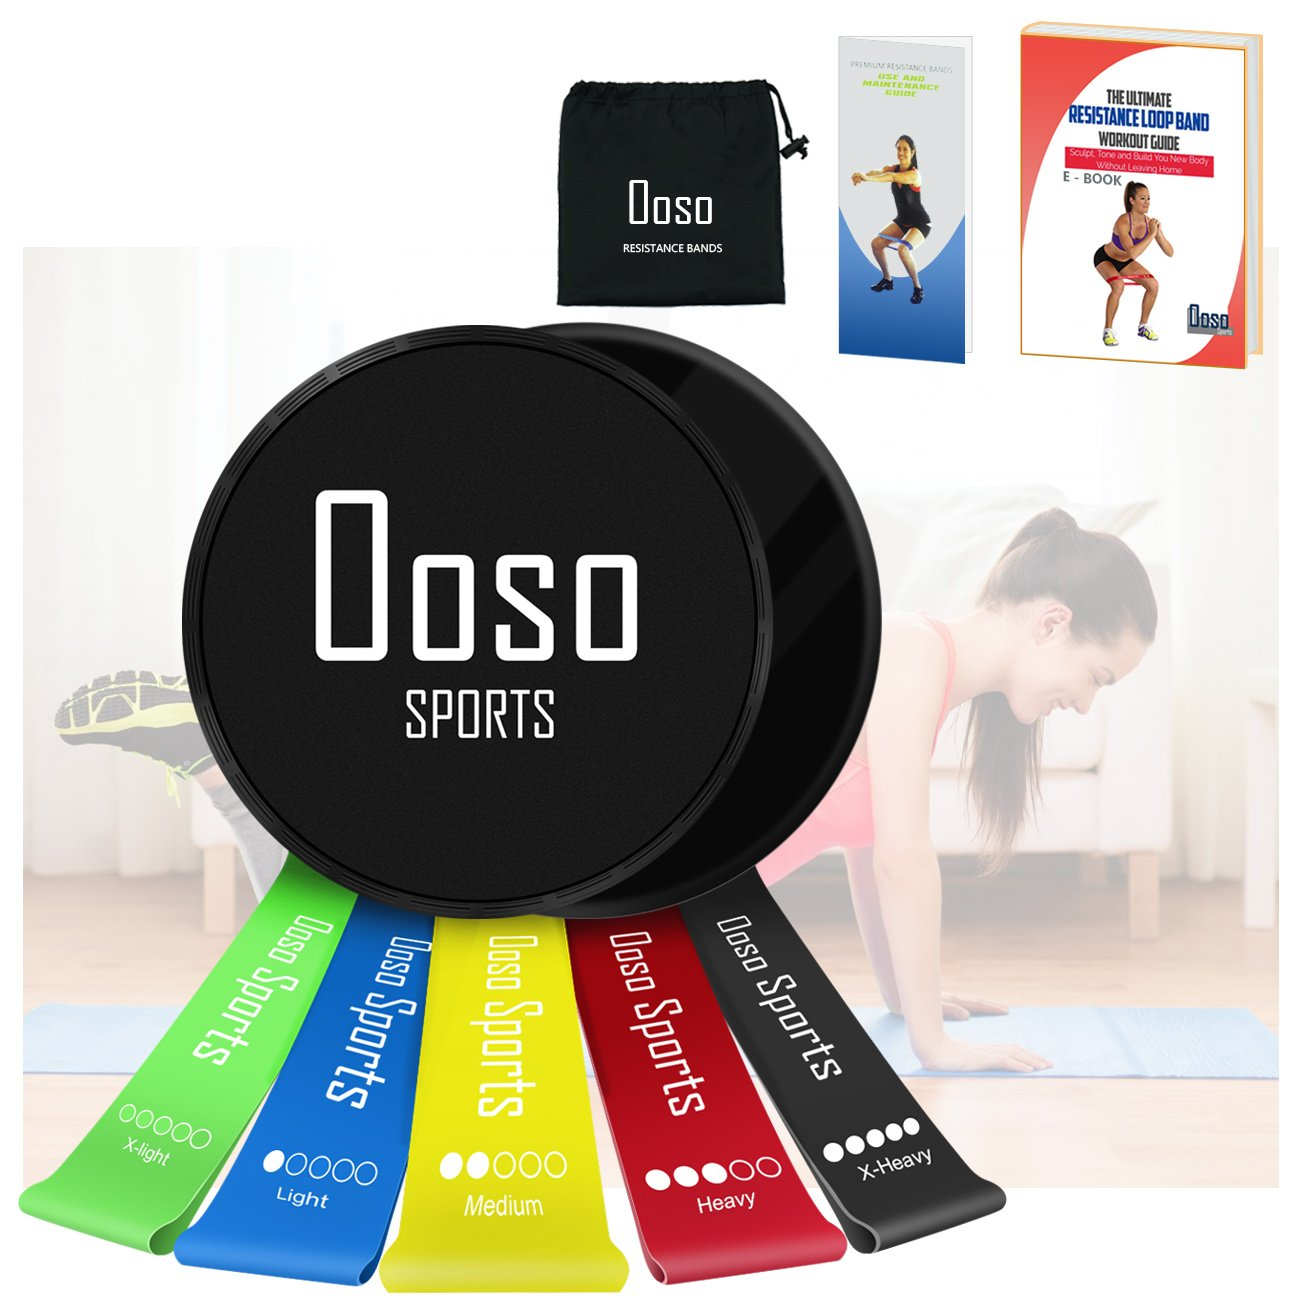 OOSO Resistance Bands Women/Men Set of 5/6, Exercise Resistance Loop Bands for Legs and Glutes, Home and Gym Workouts Resistance Elastic Bands for Pilates, Yoga, Fitness and Recovery Arms Crossfit Therapy Mobility Recovery by Ooso